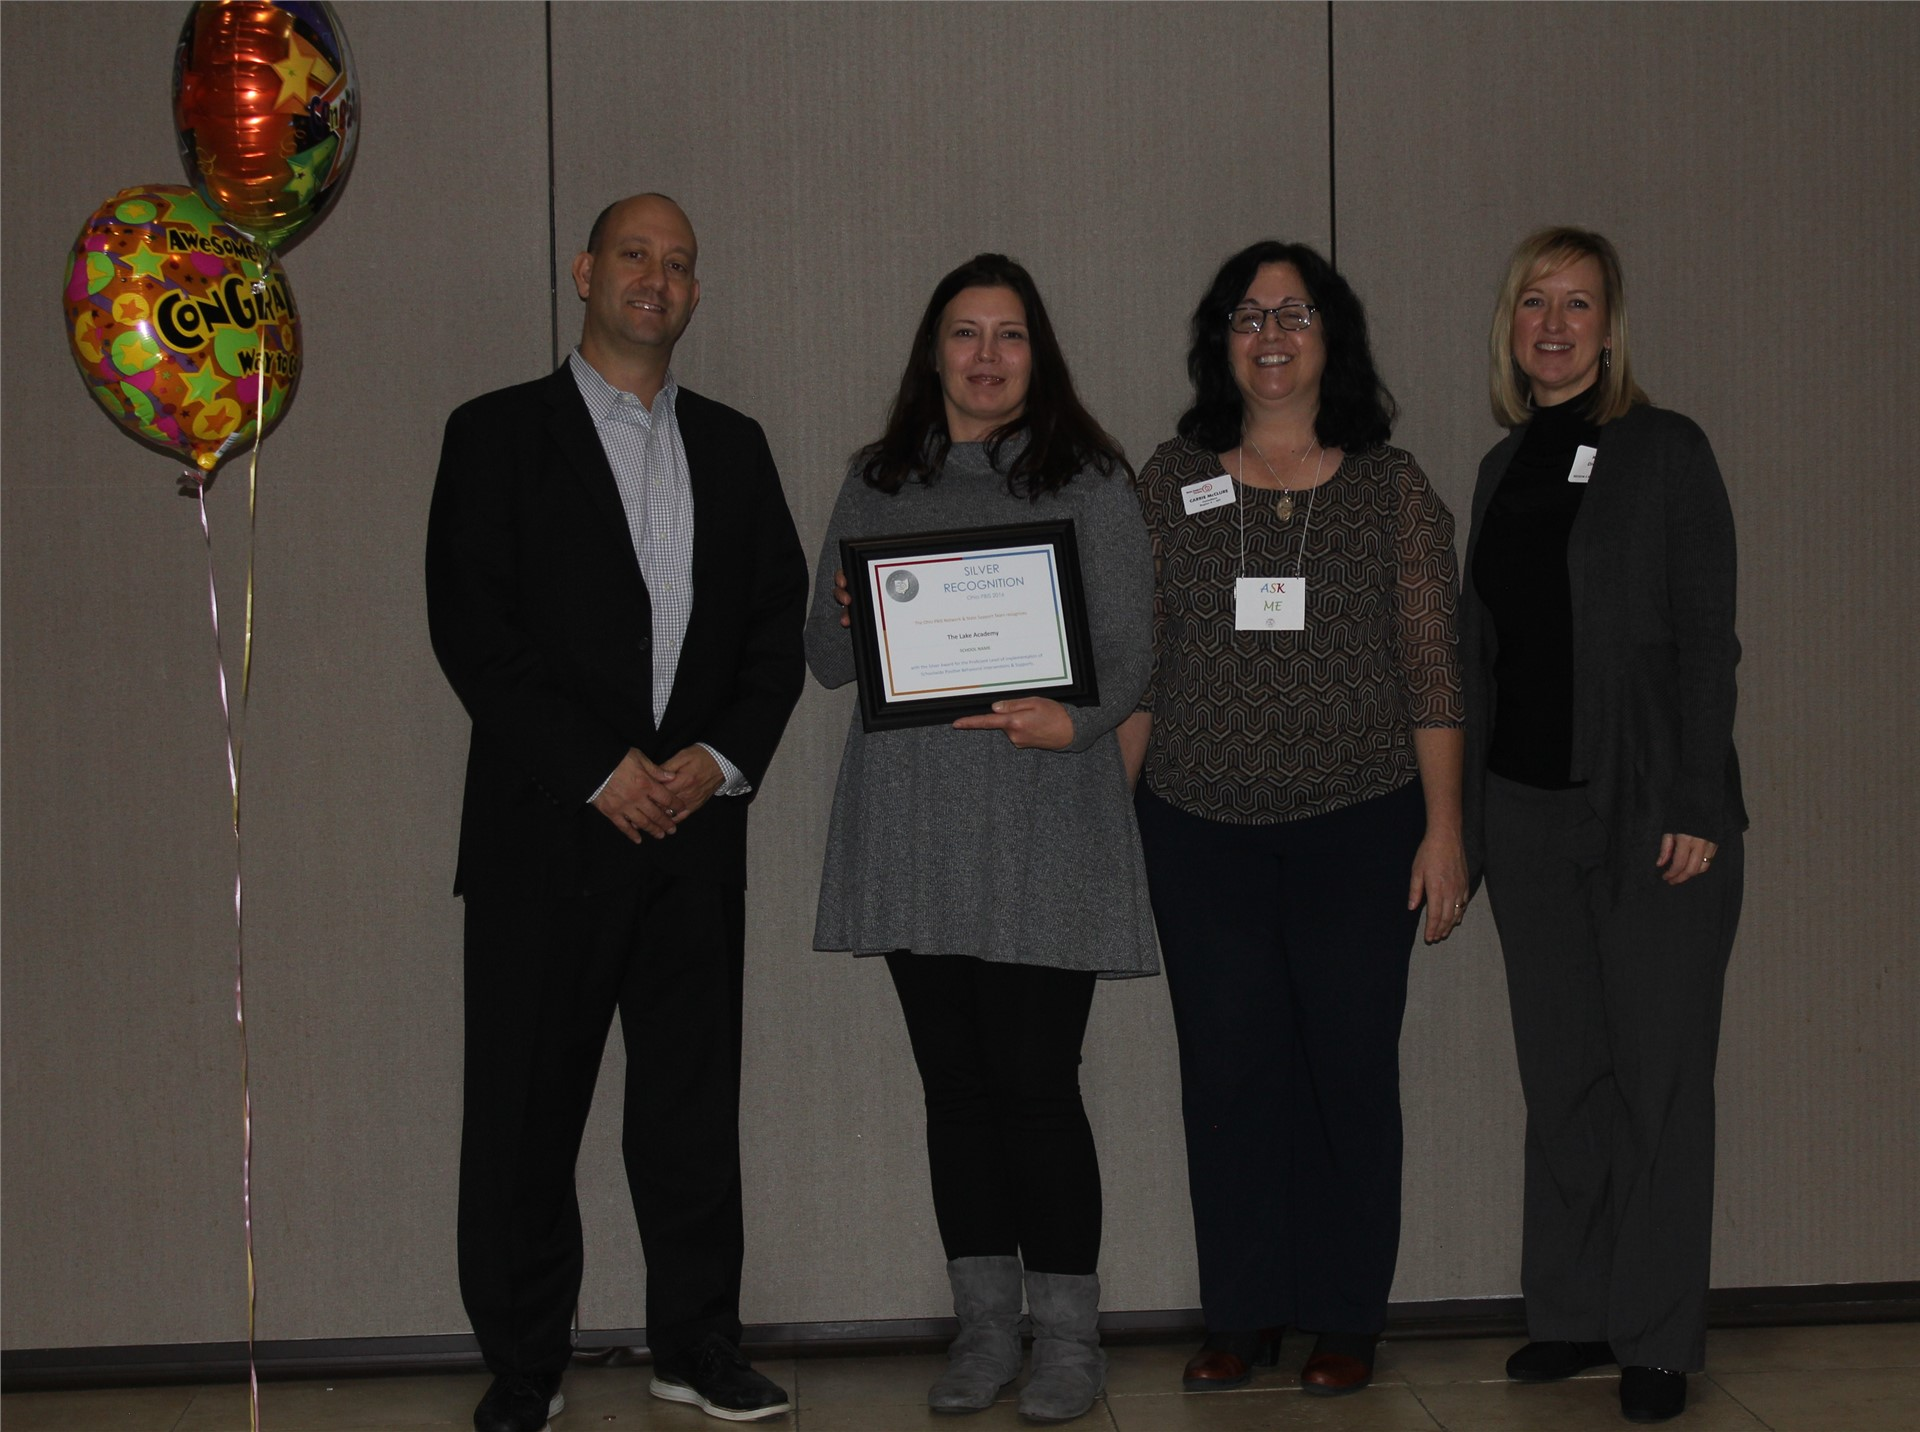 The Lake Academy received the Silver Recognition at the Ohio PBIS 2016